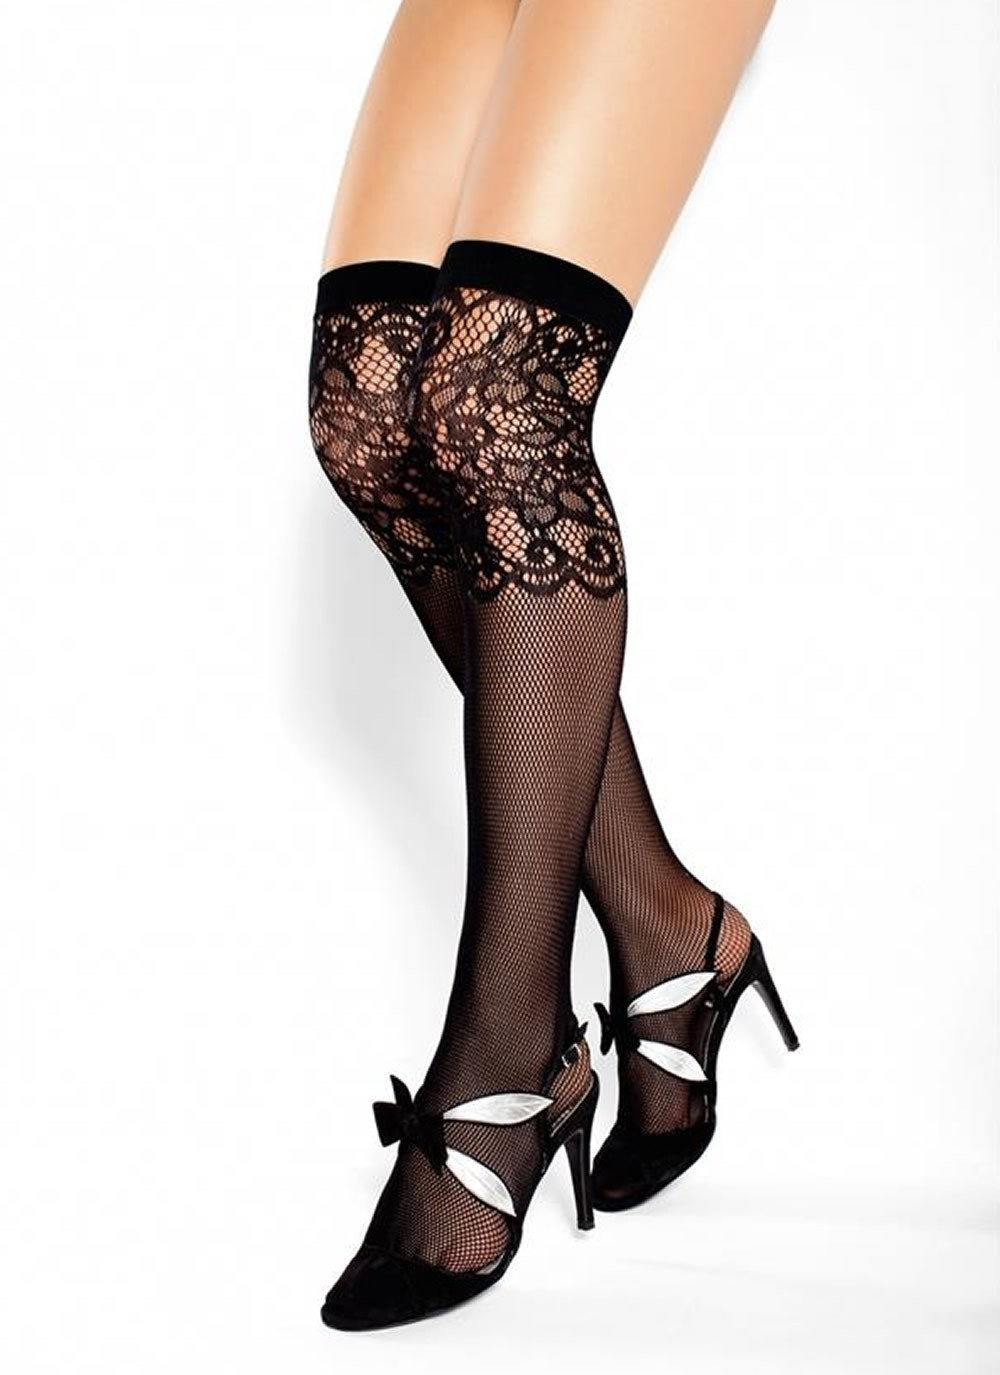 Blackjack Knee High Stocking